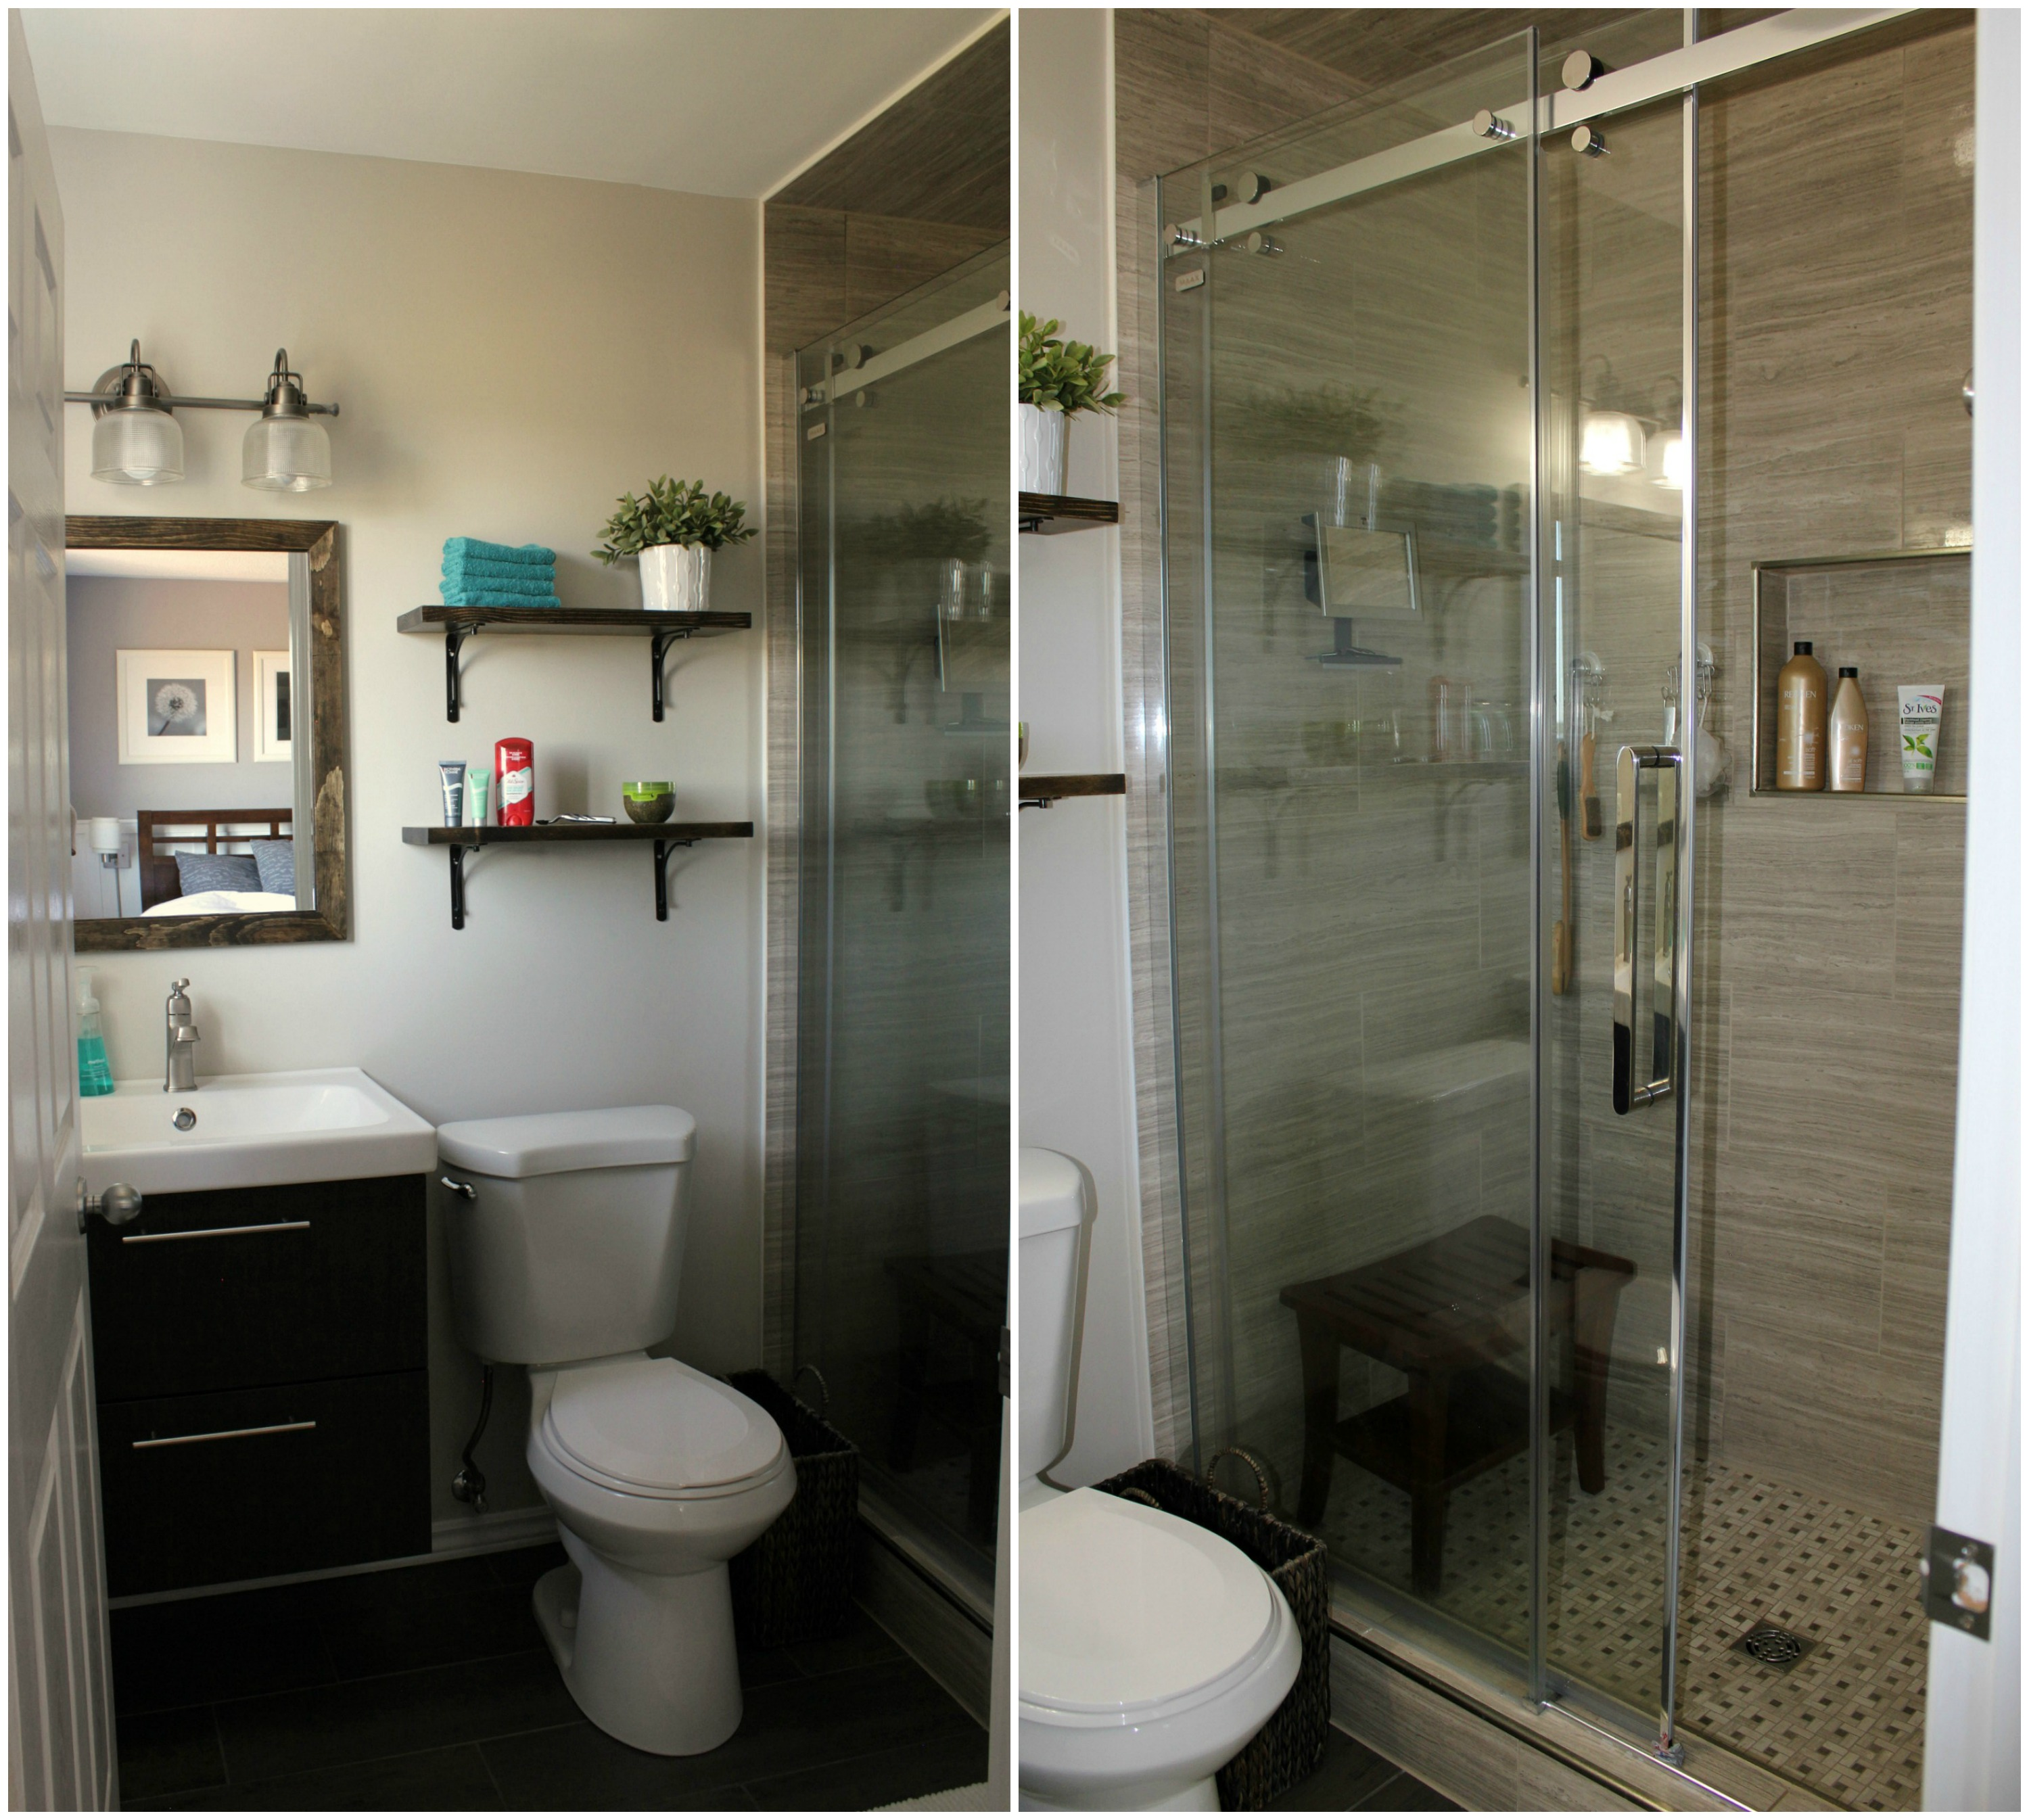 Turtles and tails ensuite bathroom reno reveal - Small bathroom suites for small spaces collection ...